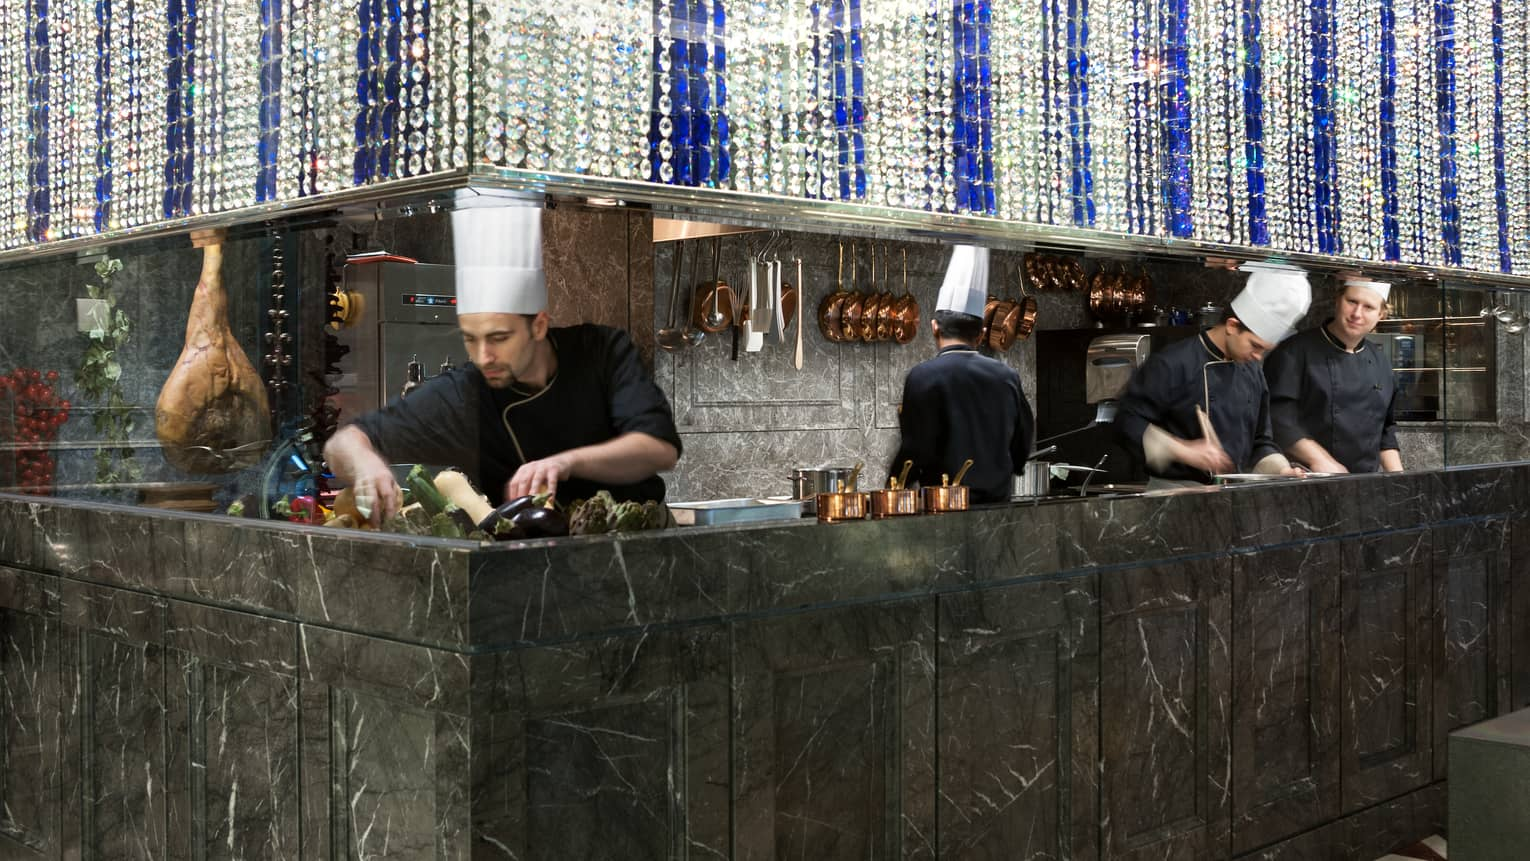 Chefs in uniform work behind black marble open kitchen at Percorso restaurant